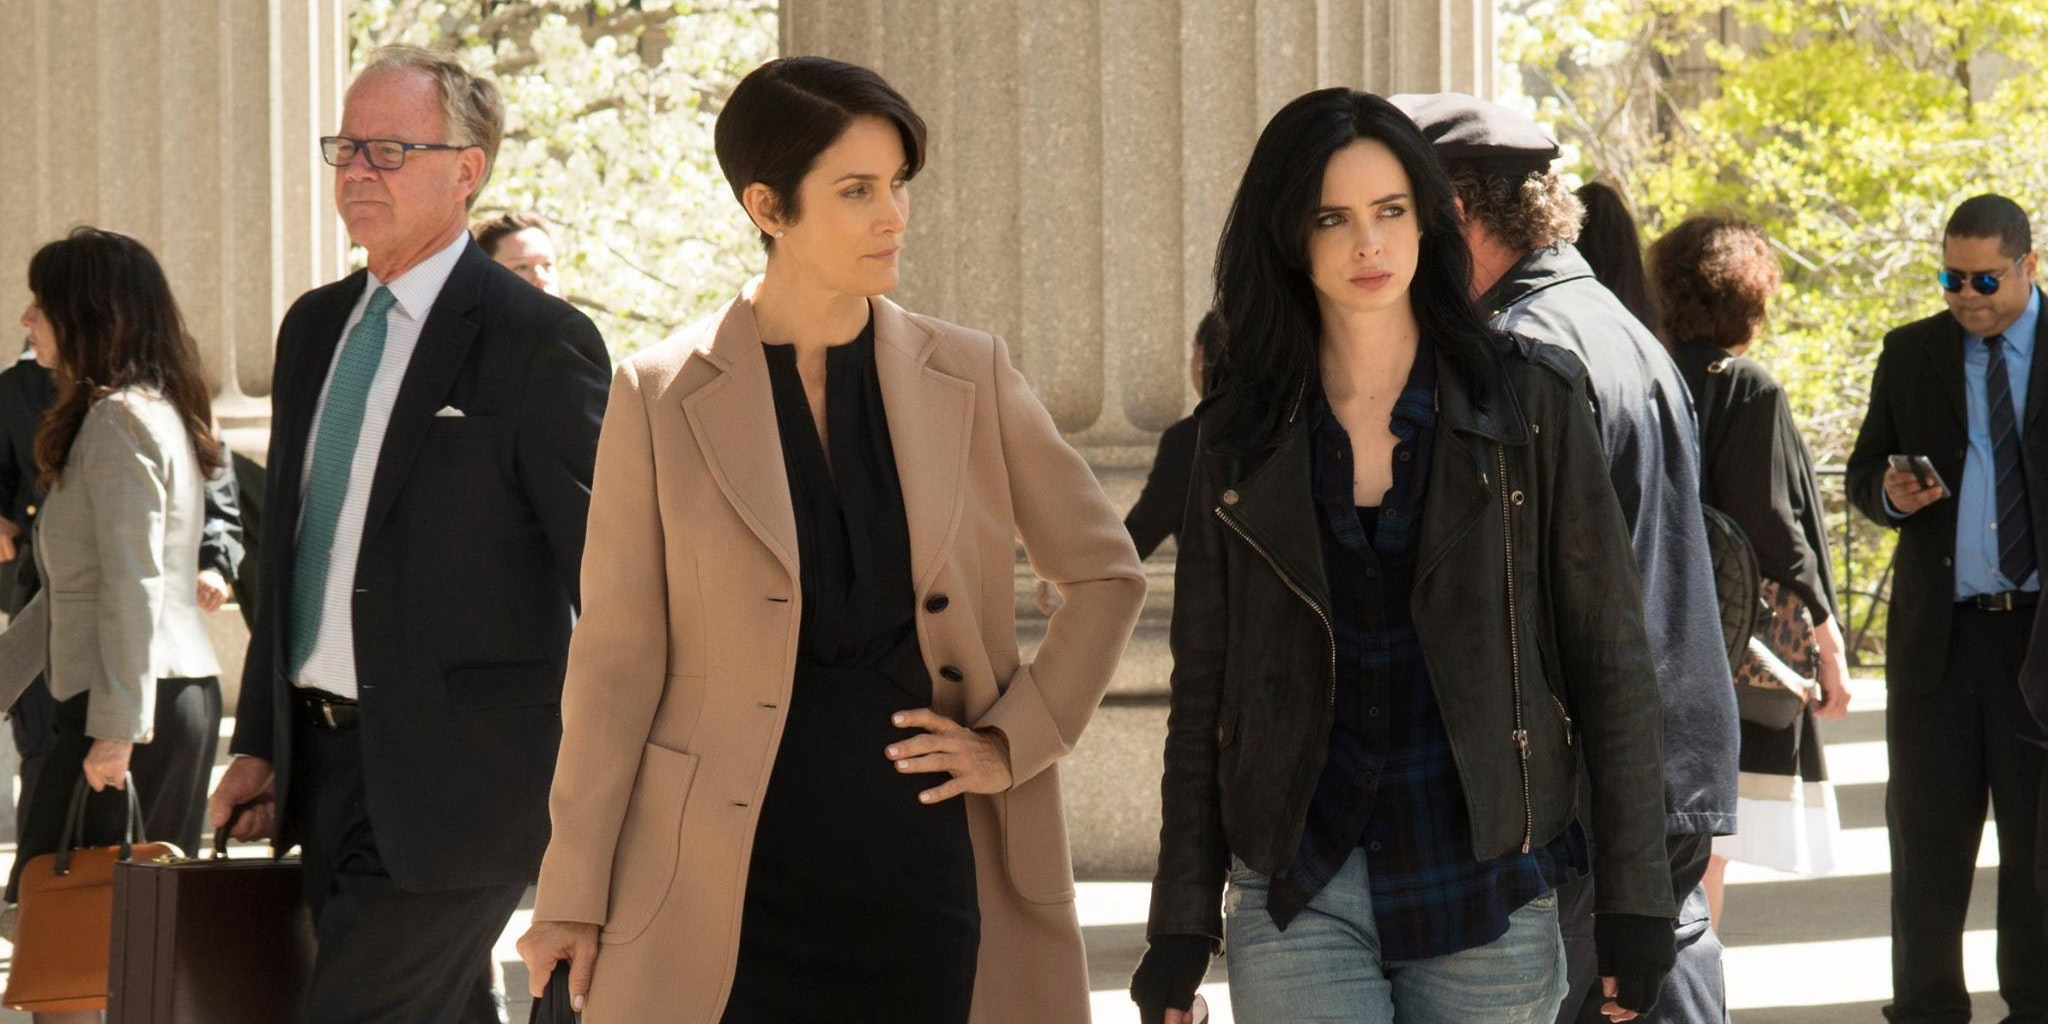 Episode Titles and Synopses Leak for Marvel's 'Jessica Jones'